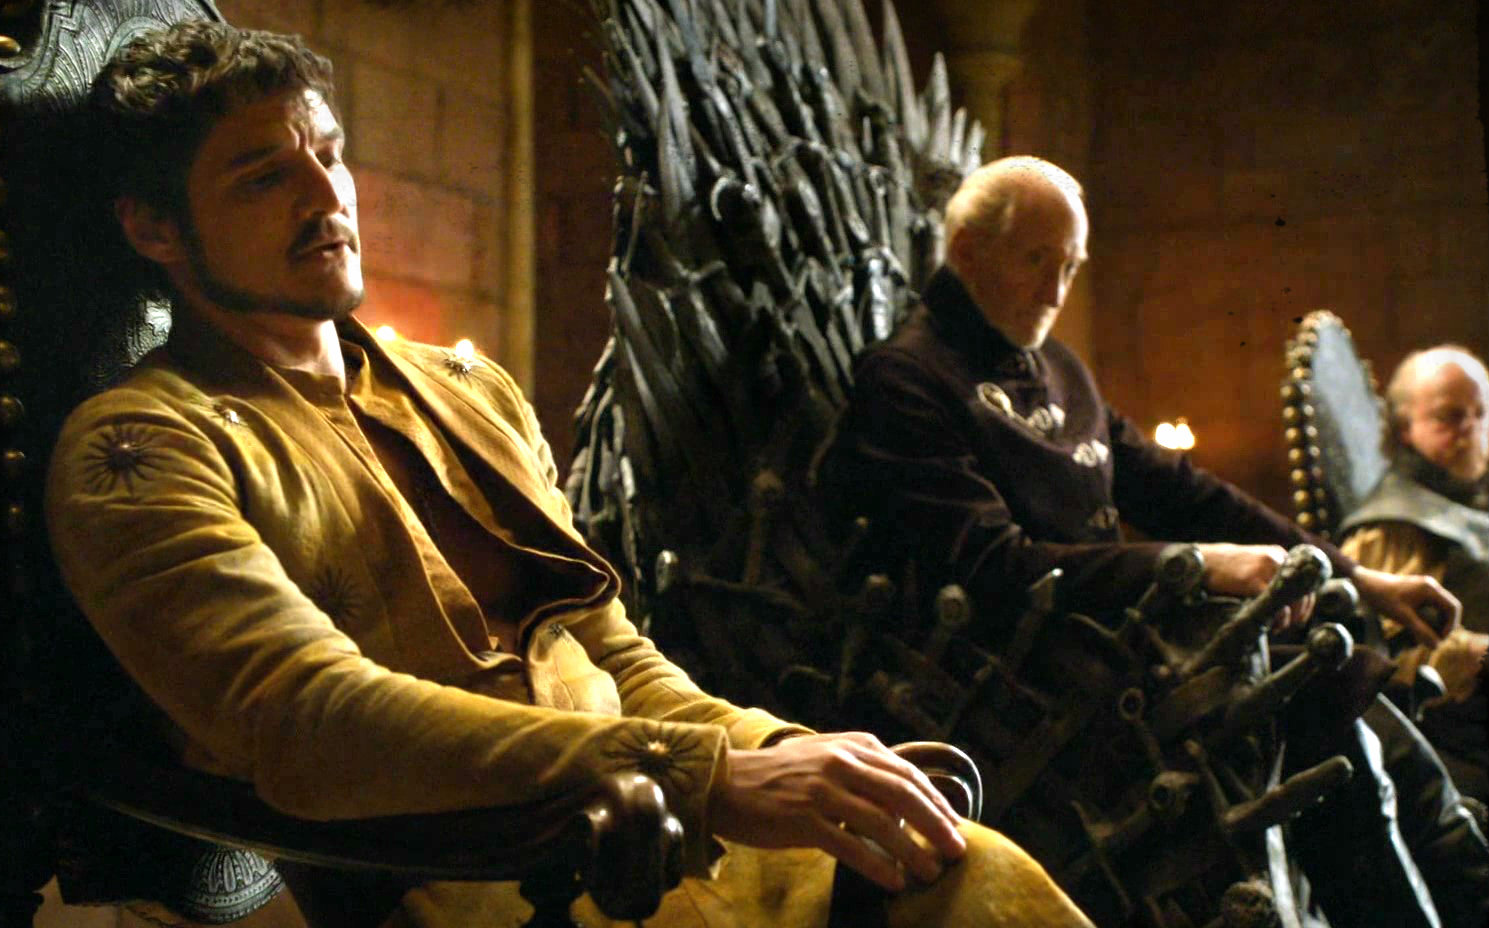 image oberyn martell in the laws of gods and game of thrones wiki wikia. Black Bedroom Furniture Sets. Home Design Ideas